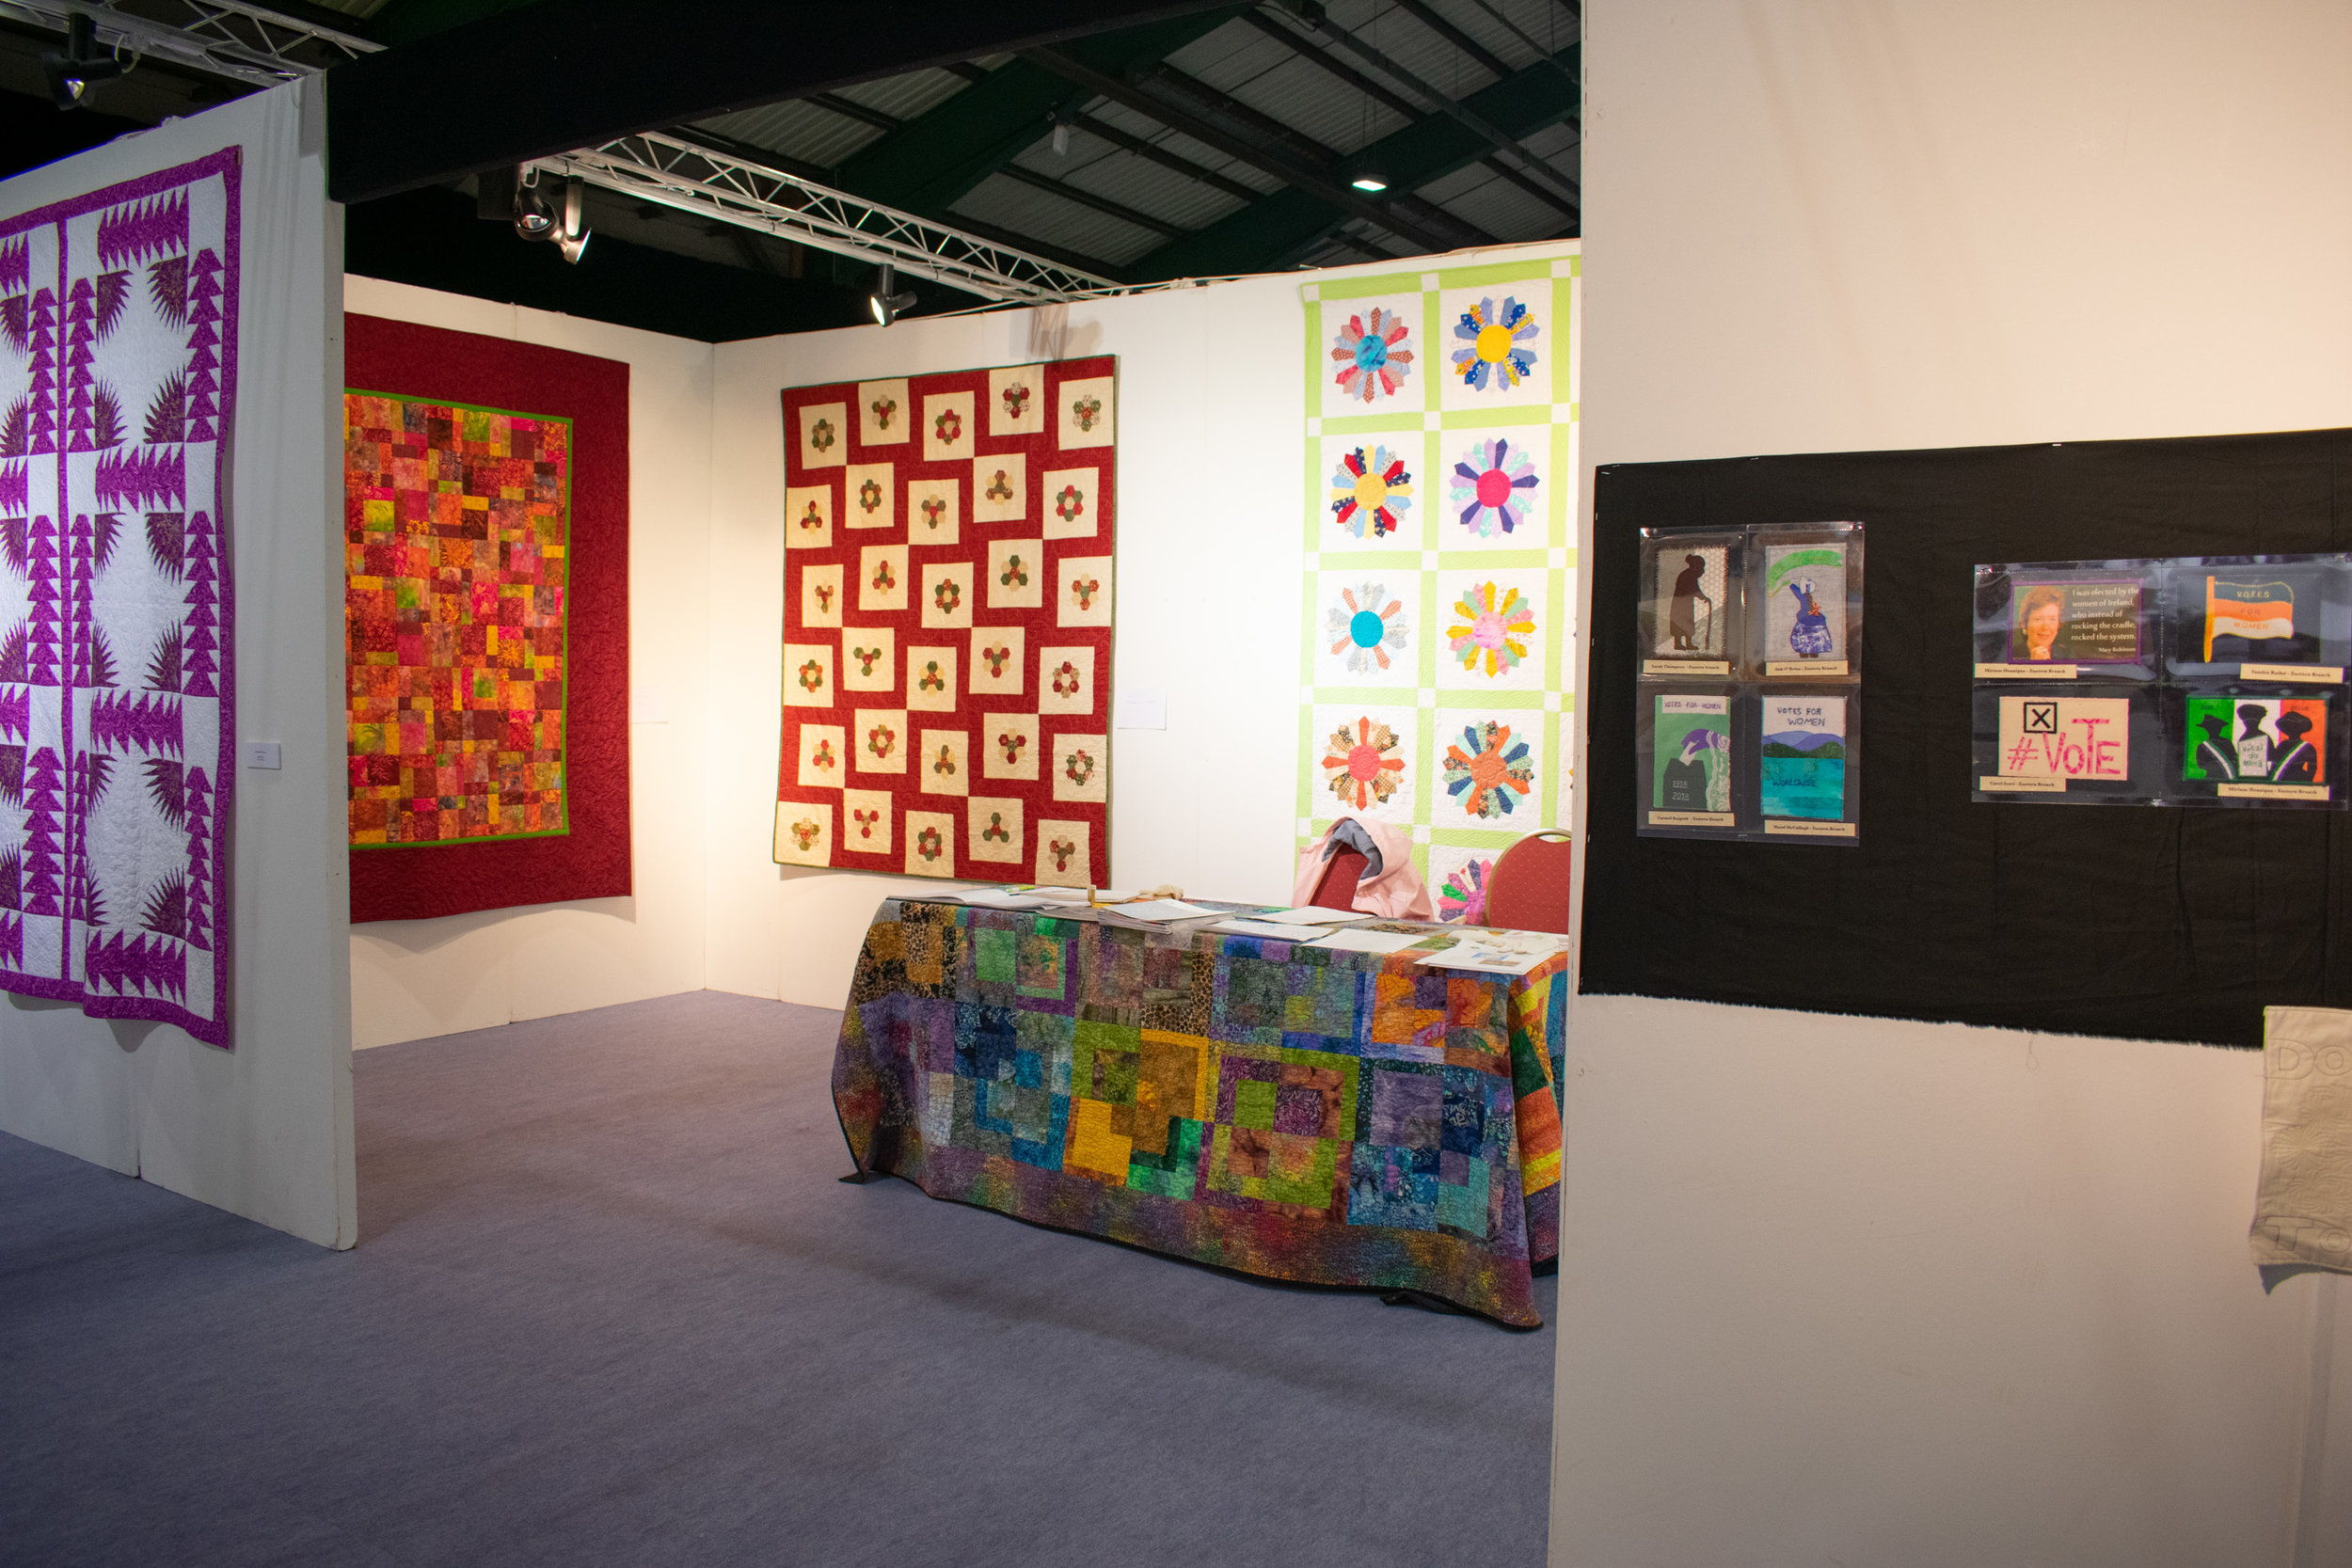 Knitting and stitching show 2018